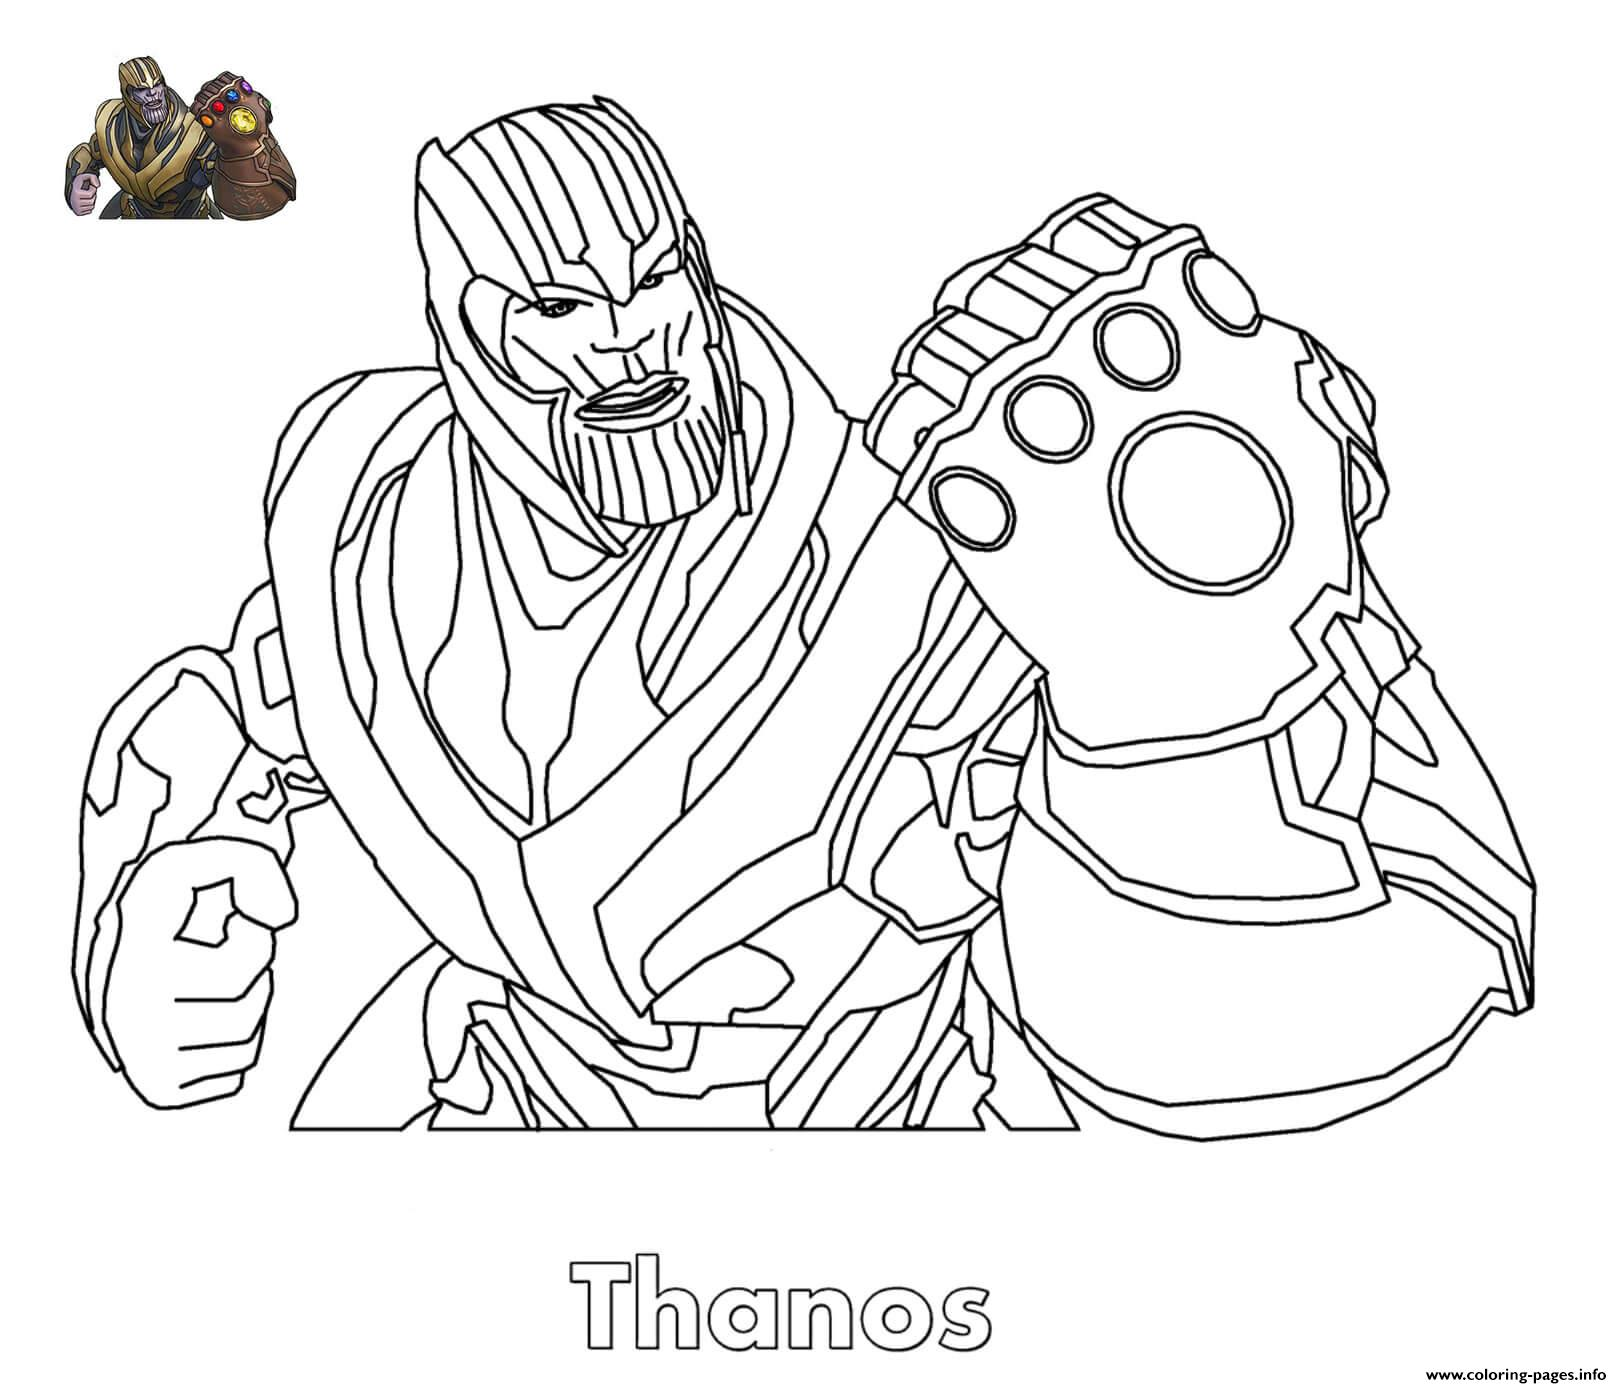 photograph relating to Free Printable Fortnite Coloring Pages referred to as Thanos Fortnite Coloring Internet pages Printable